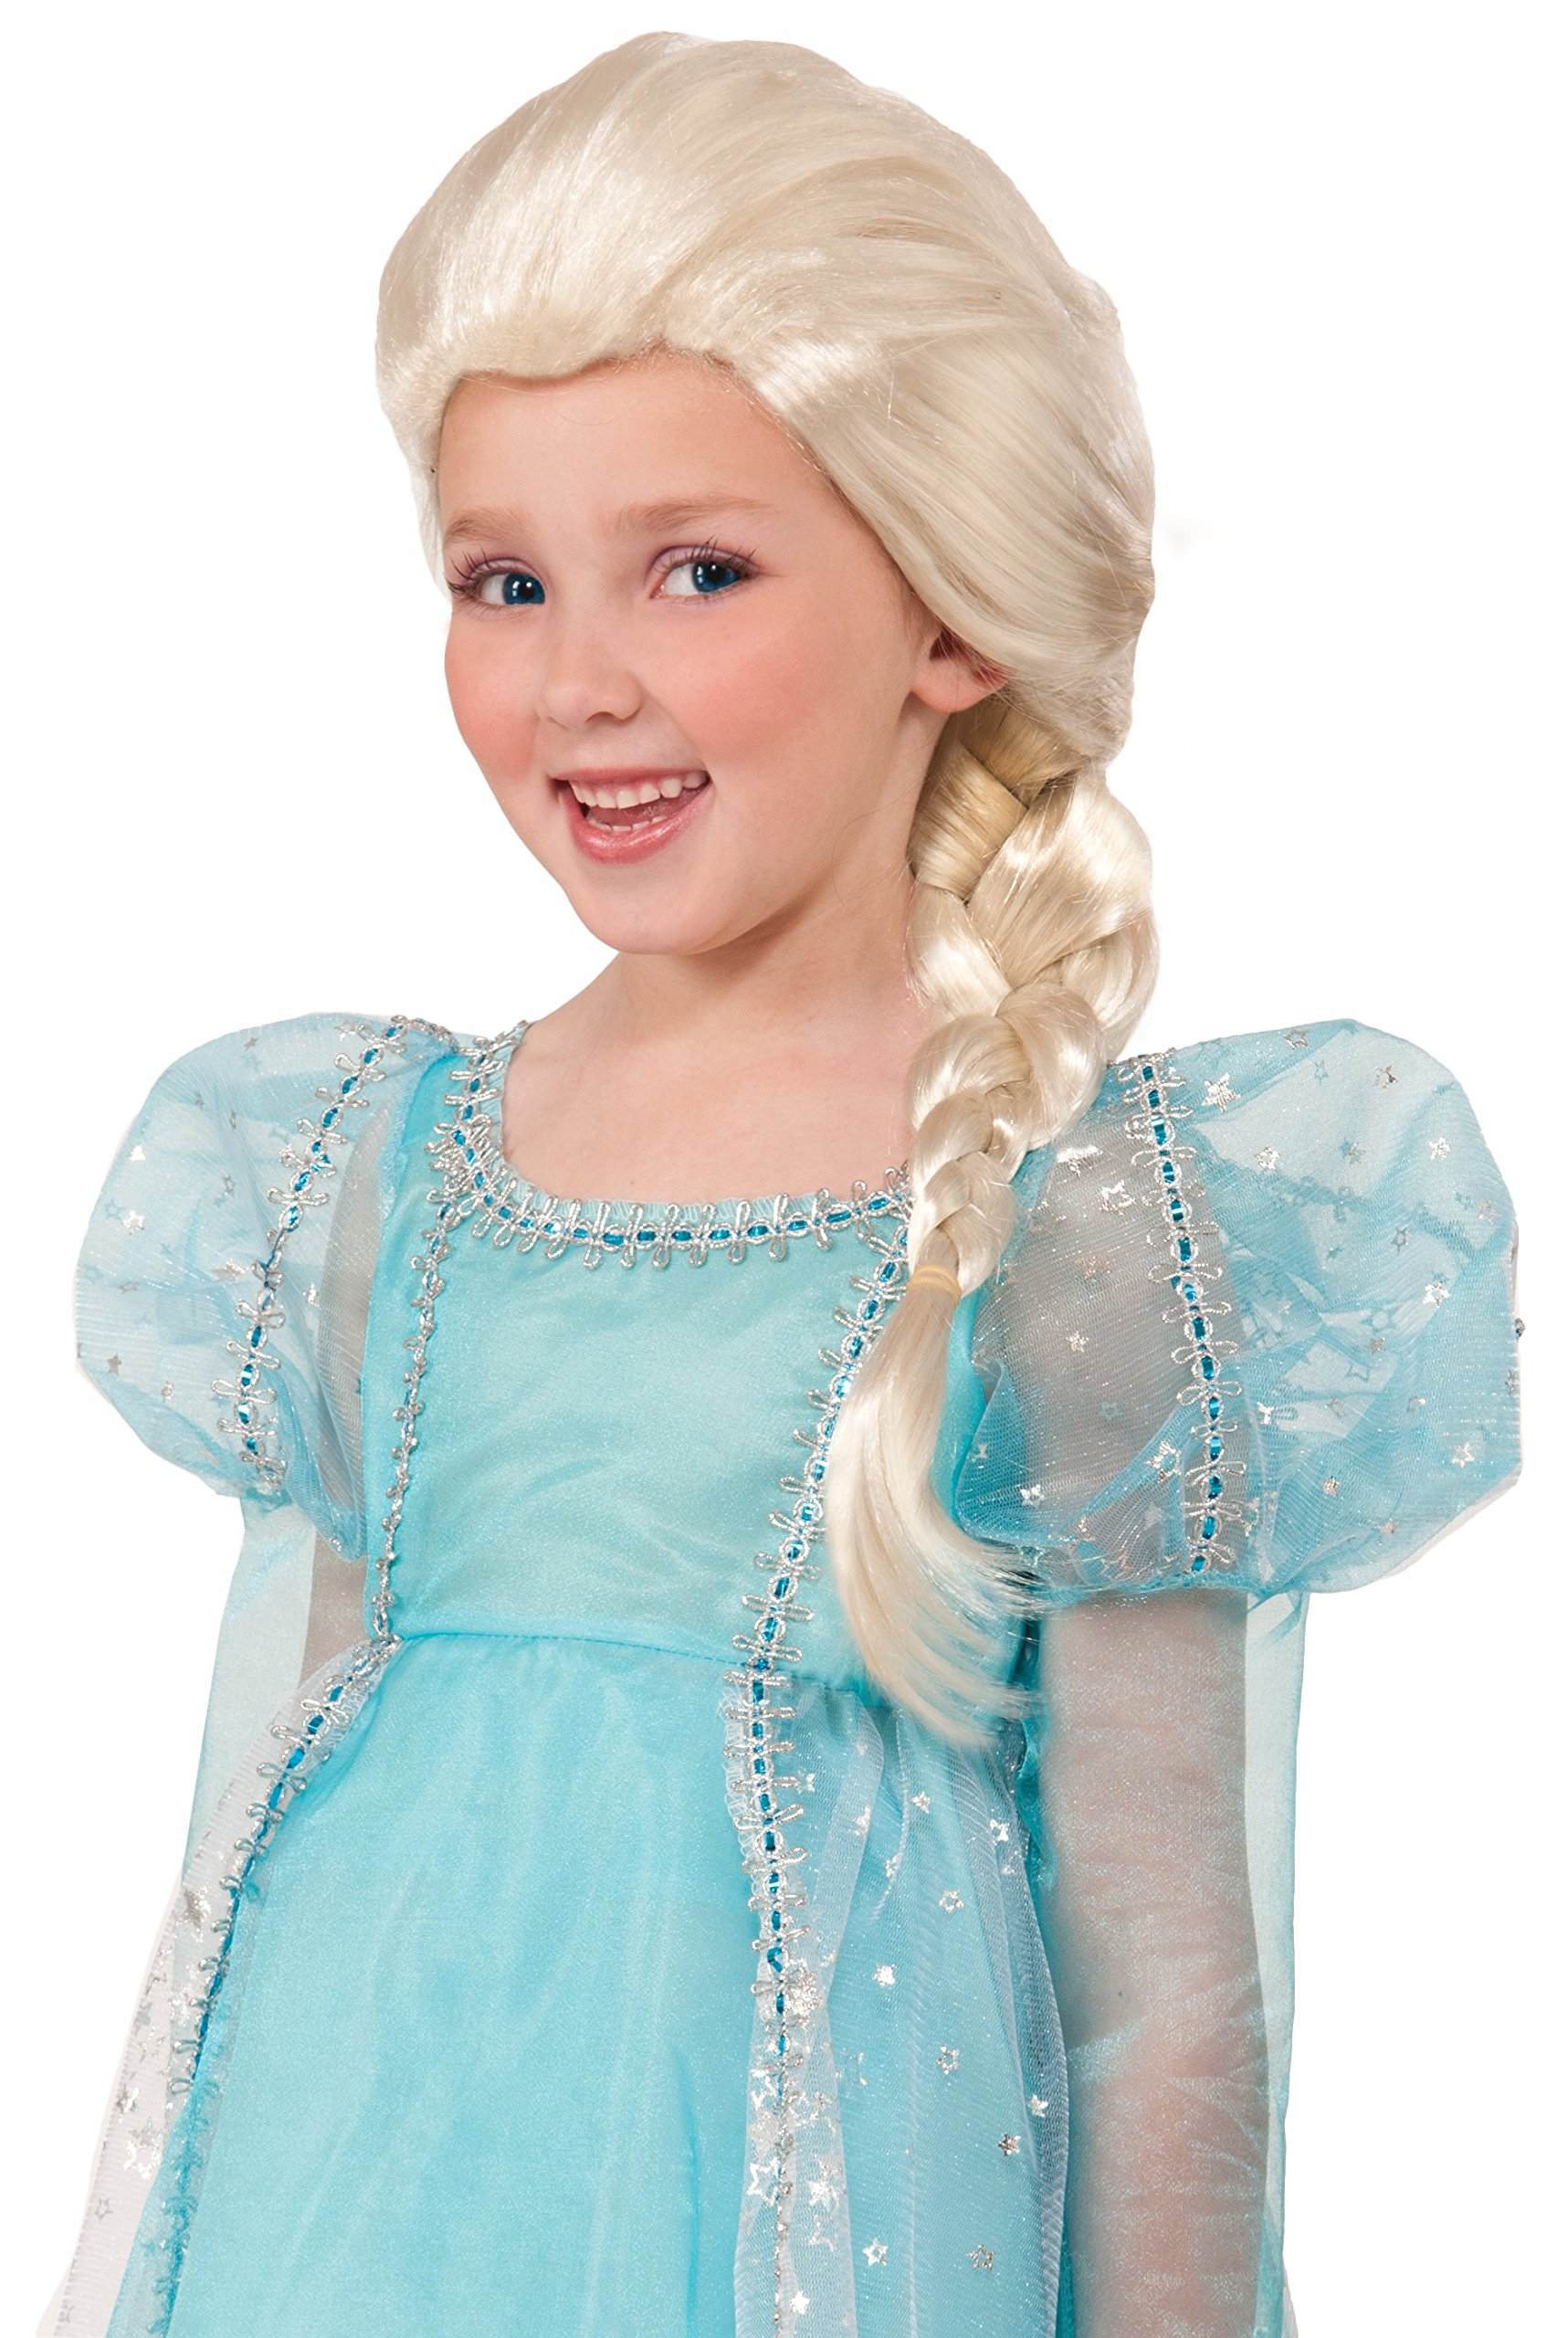 Forum Side Braid Child Princess Wig, Blonde by Forum Novelties